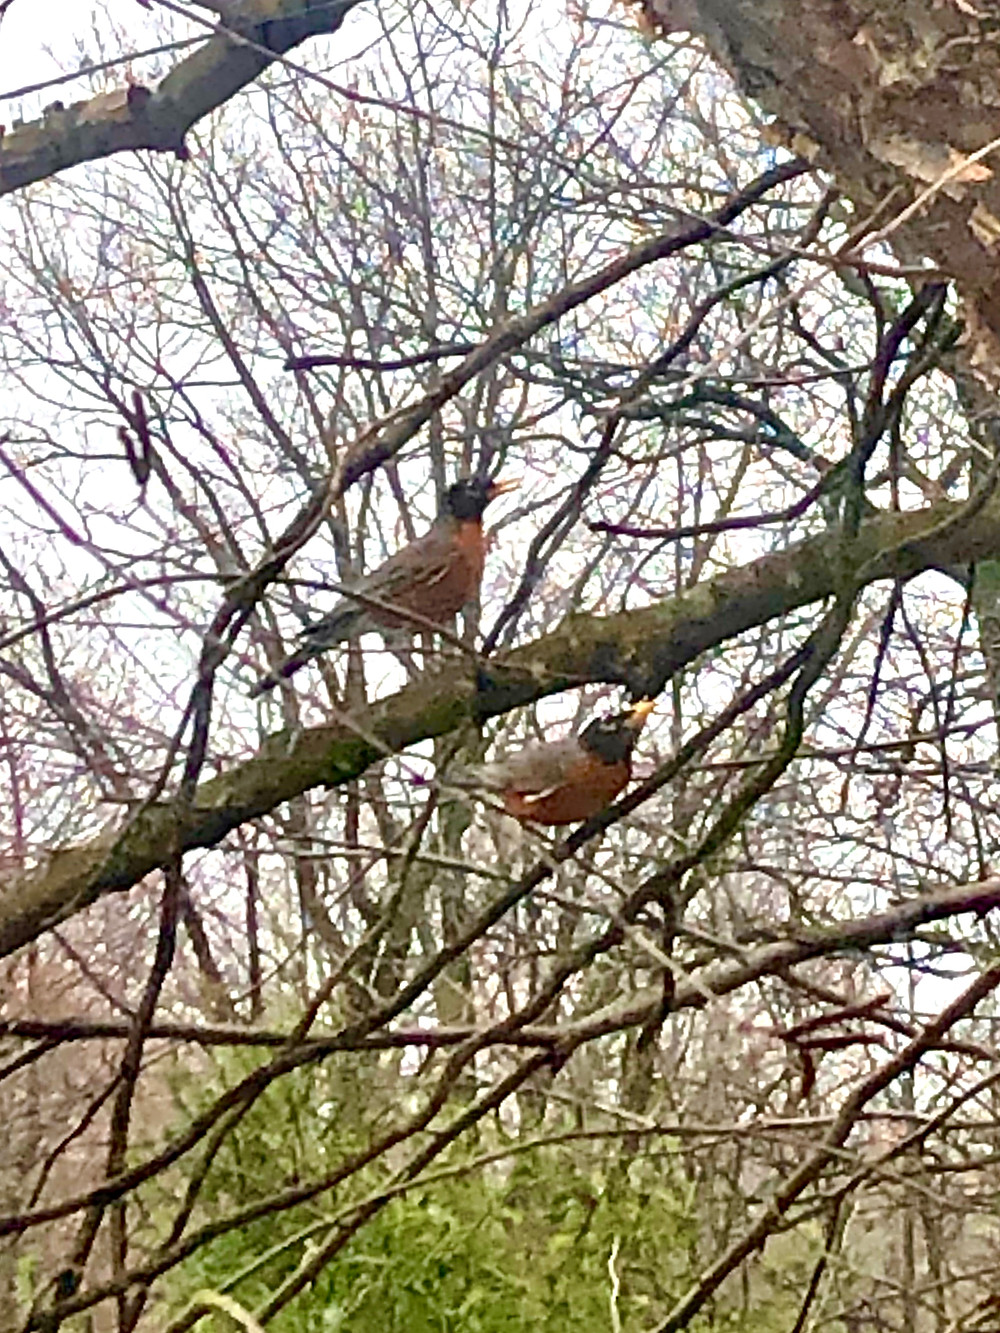 Two robins in a tree outside a window near Sanctuary Christian Counseling in Shippensburg, PA